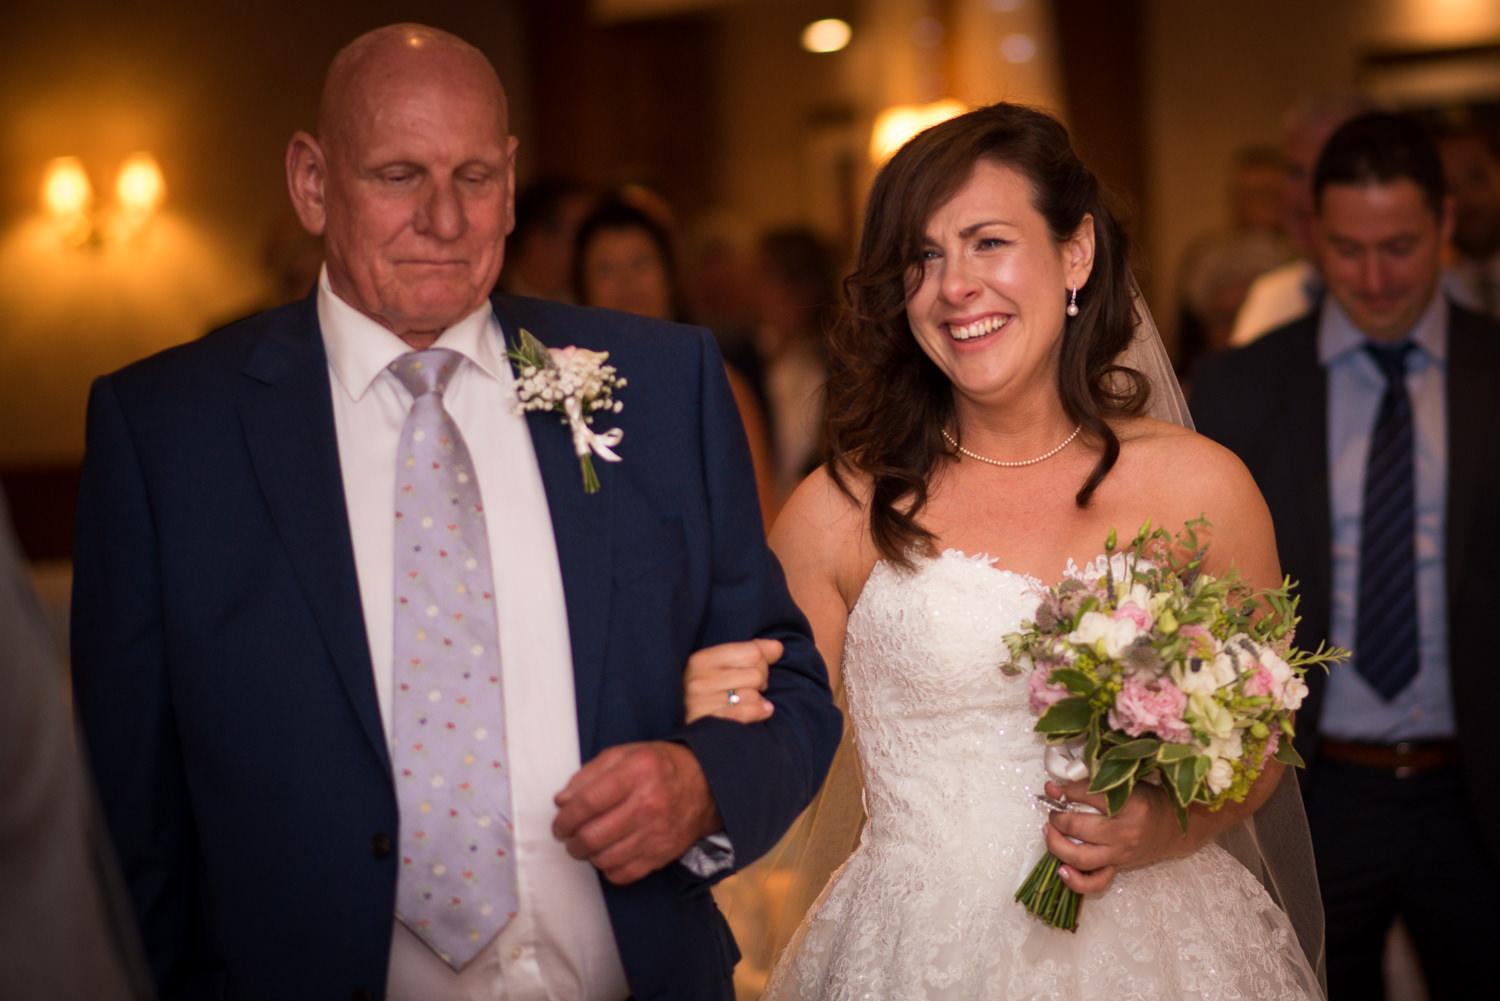 Bride at Ashdown Park Hotel, tears of joy